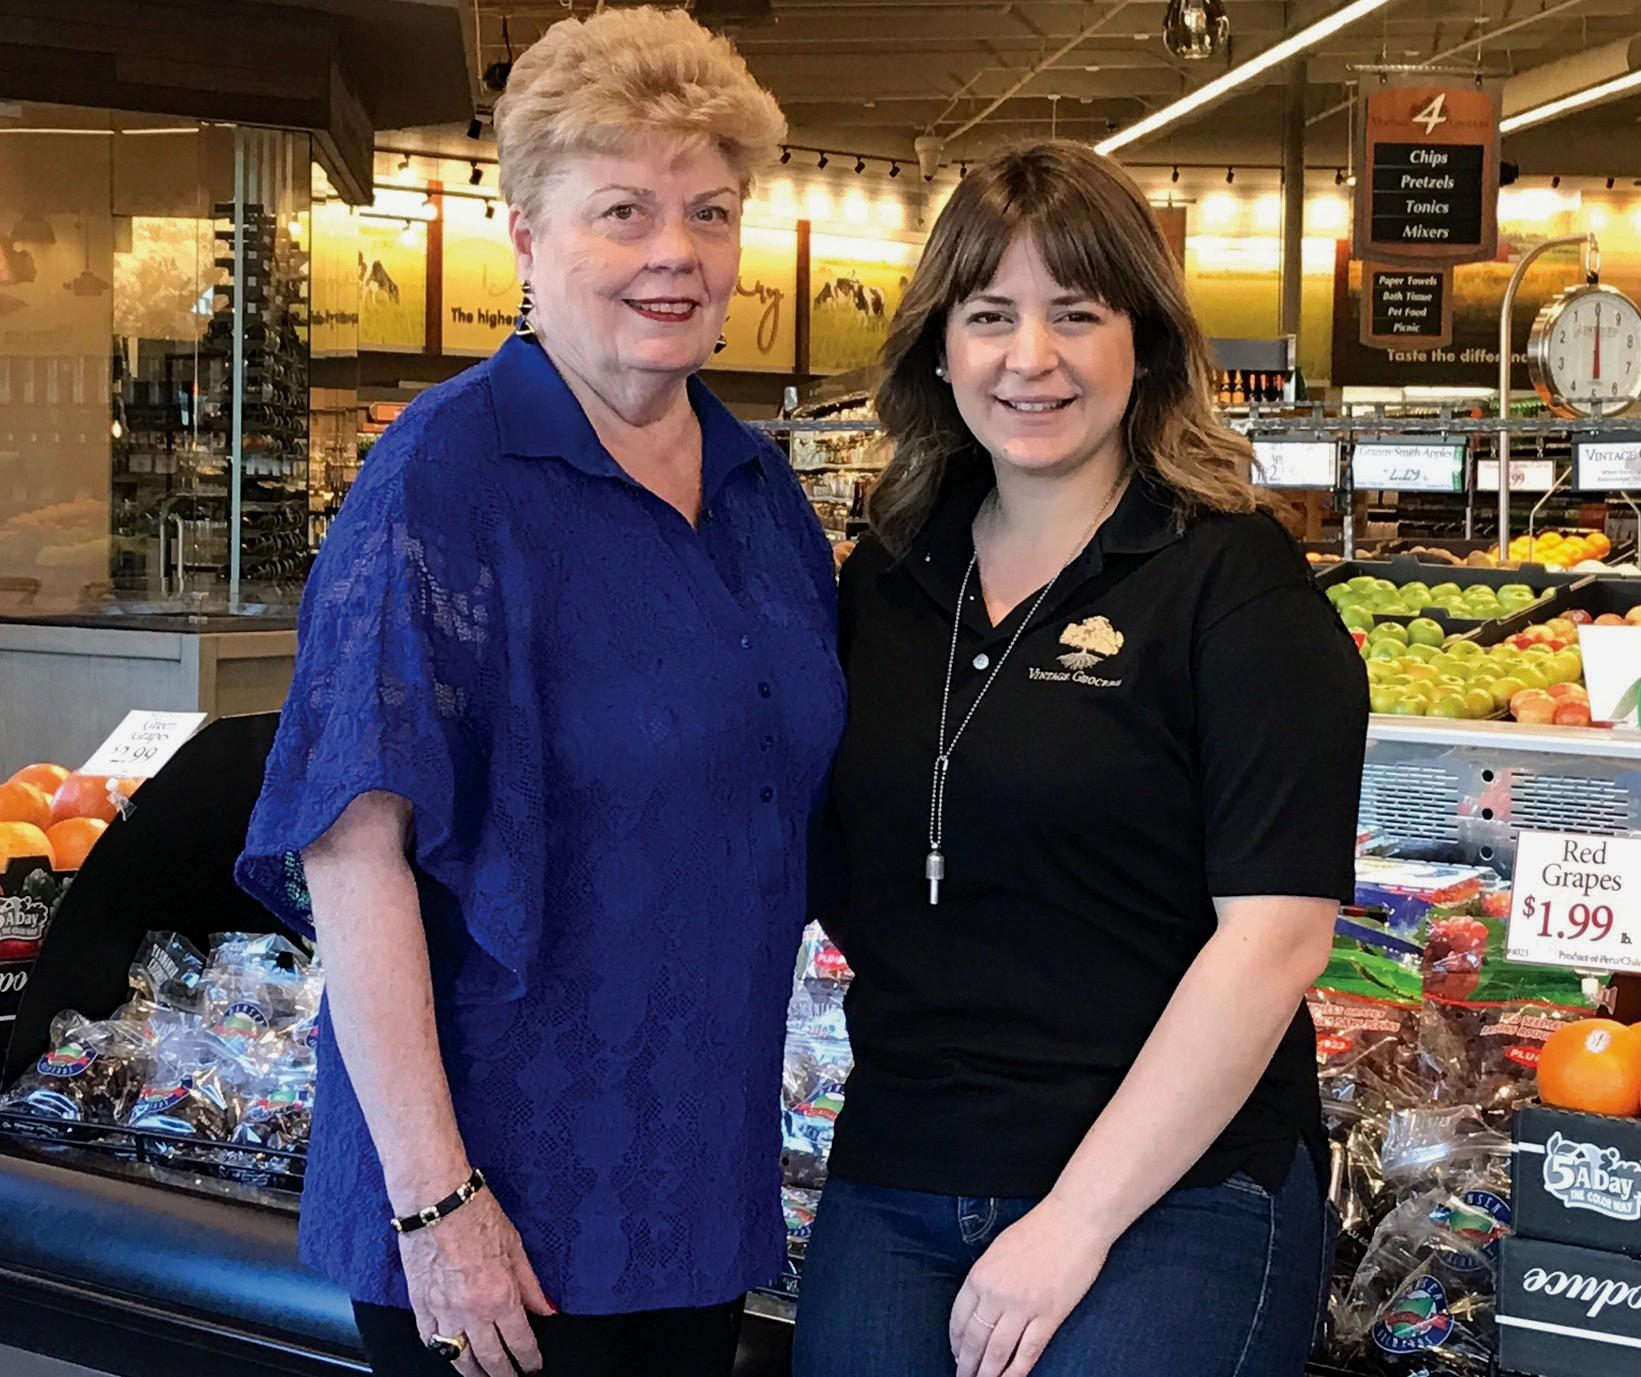 SAVE THE DATE—Judy Doane, president of Westlake Village Garden Club, and Mary Carbonniere of Vintage Grocers at The Promenade are promoting the club's annual garden tour set for Sun., April 23.